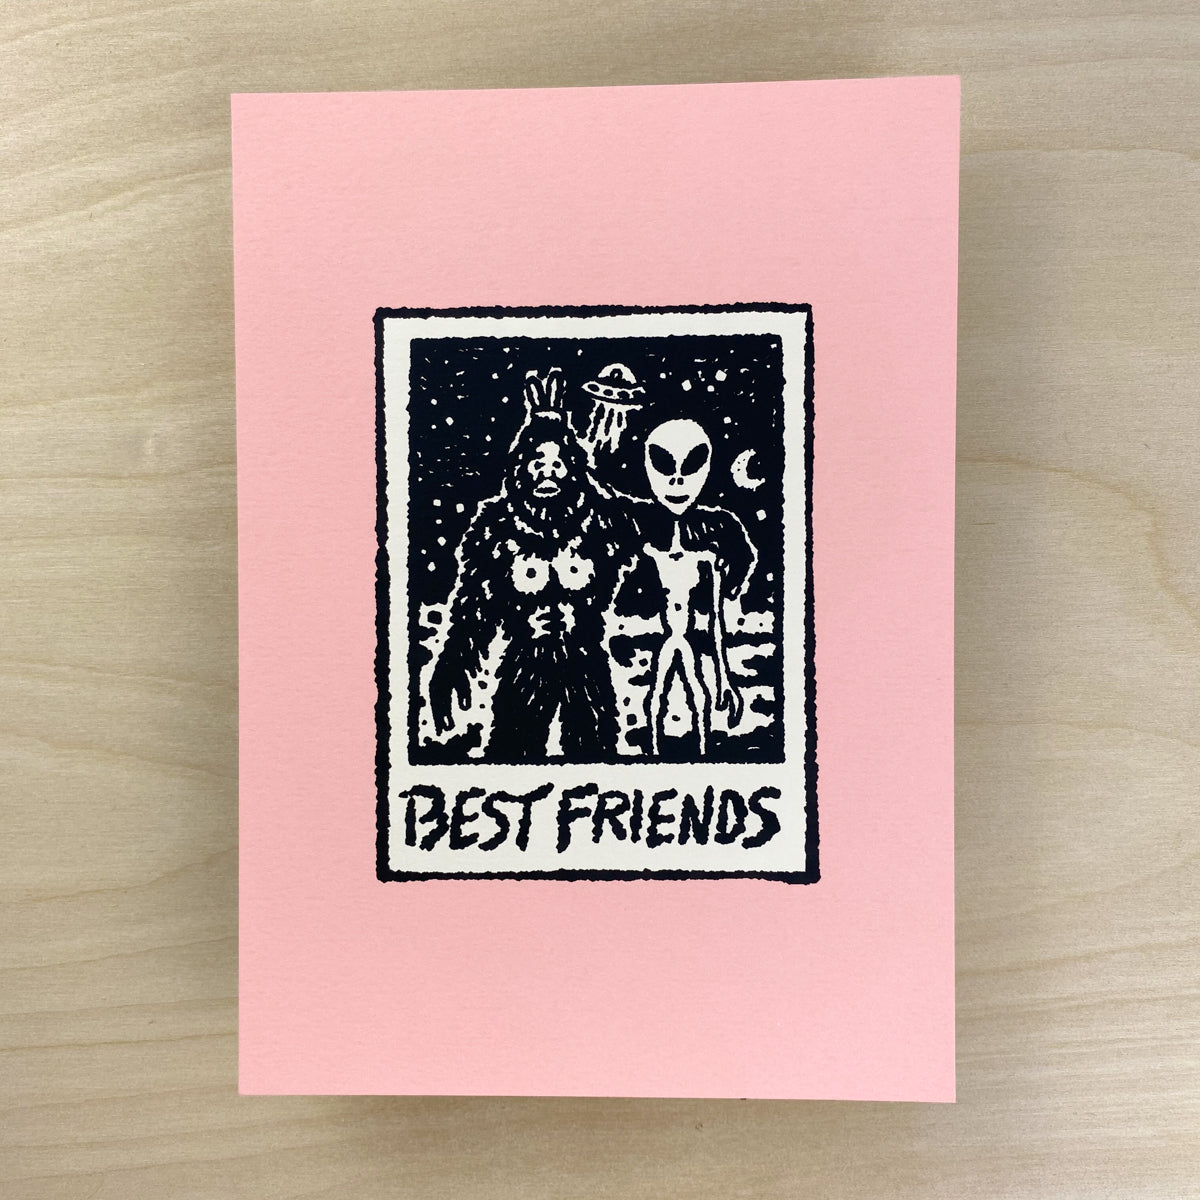 Best Friends - Signed Print #192